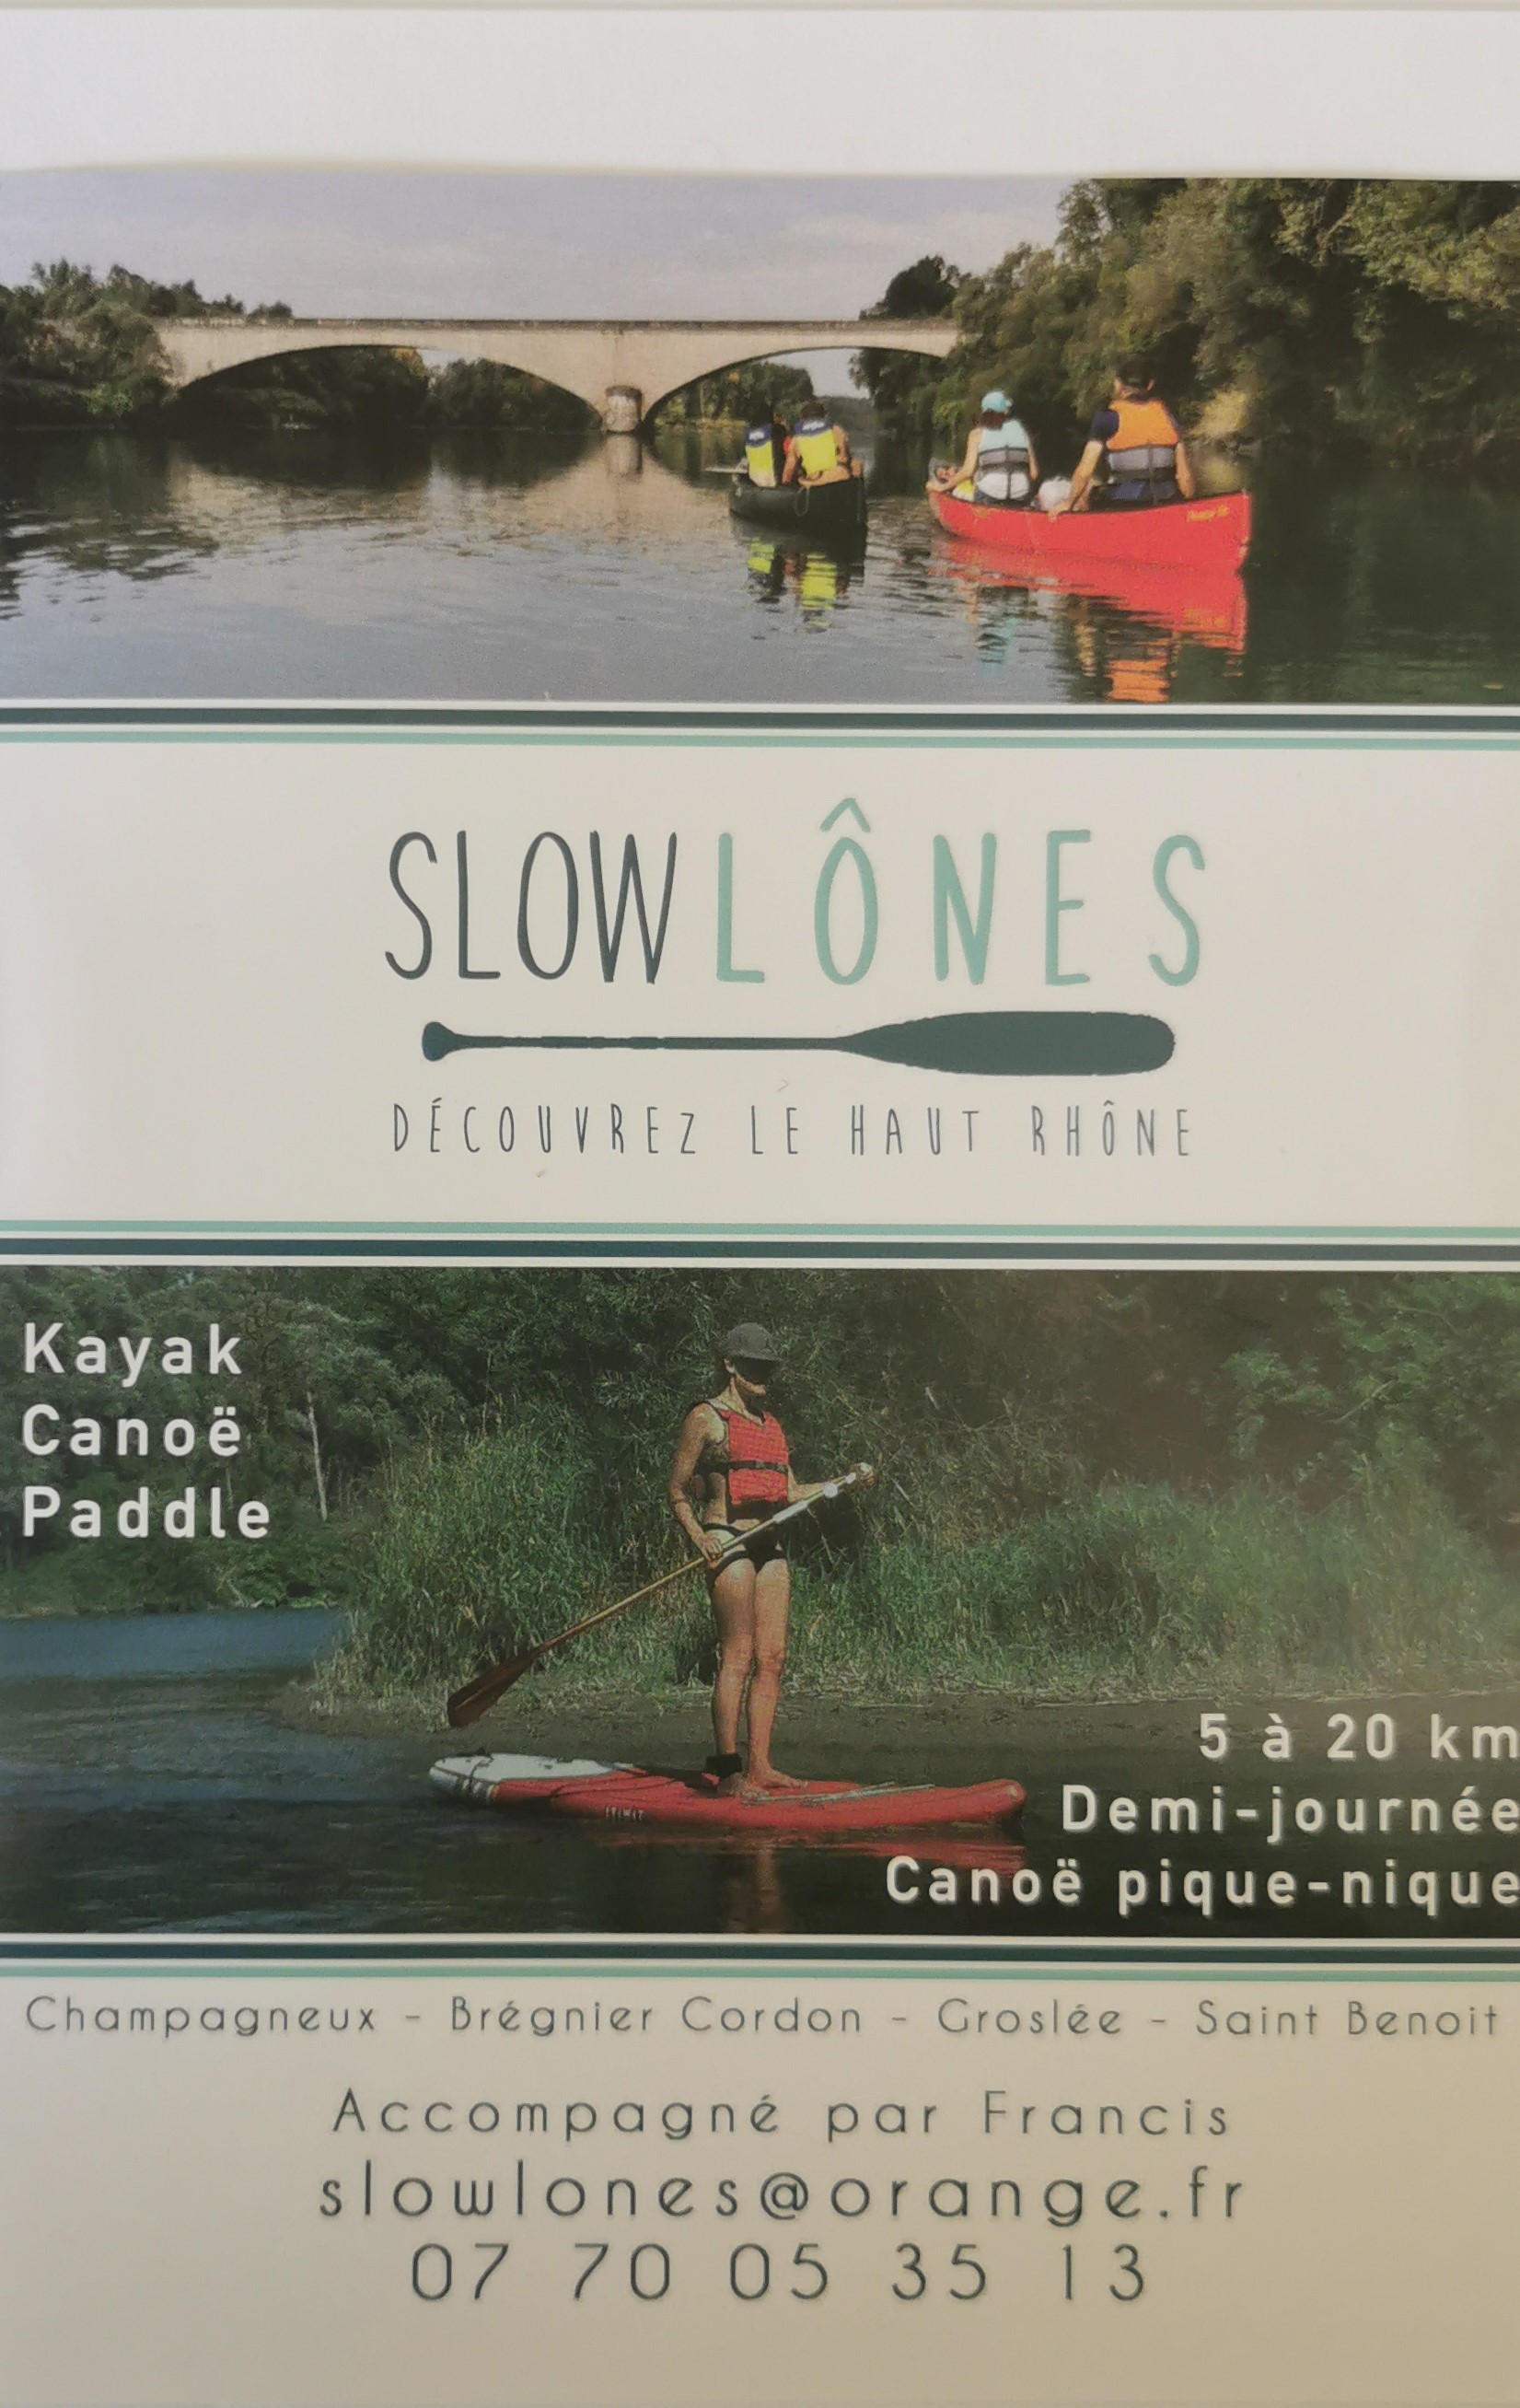 flyer en photo SLOWLONES.jpg